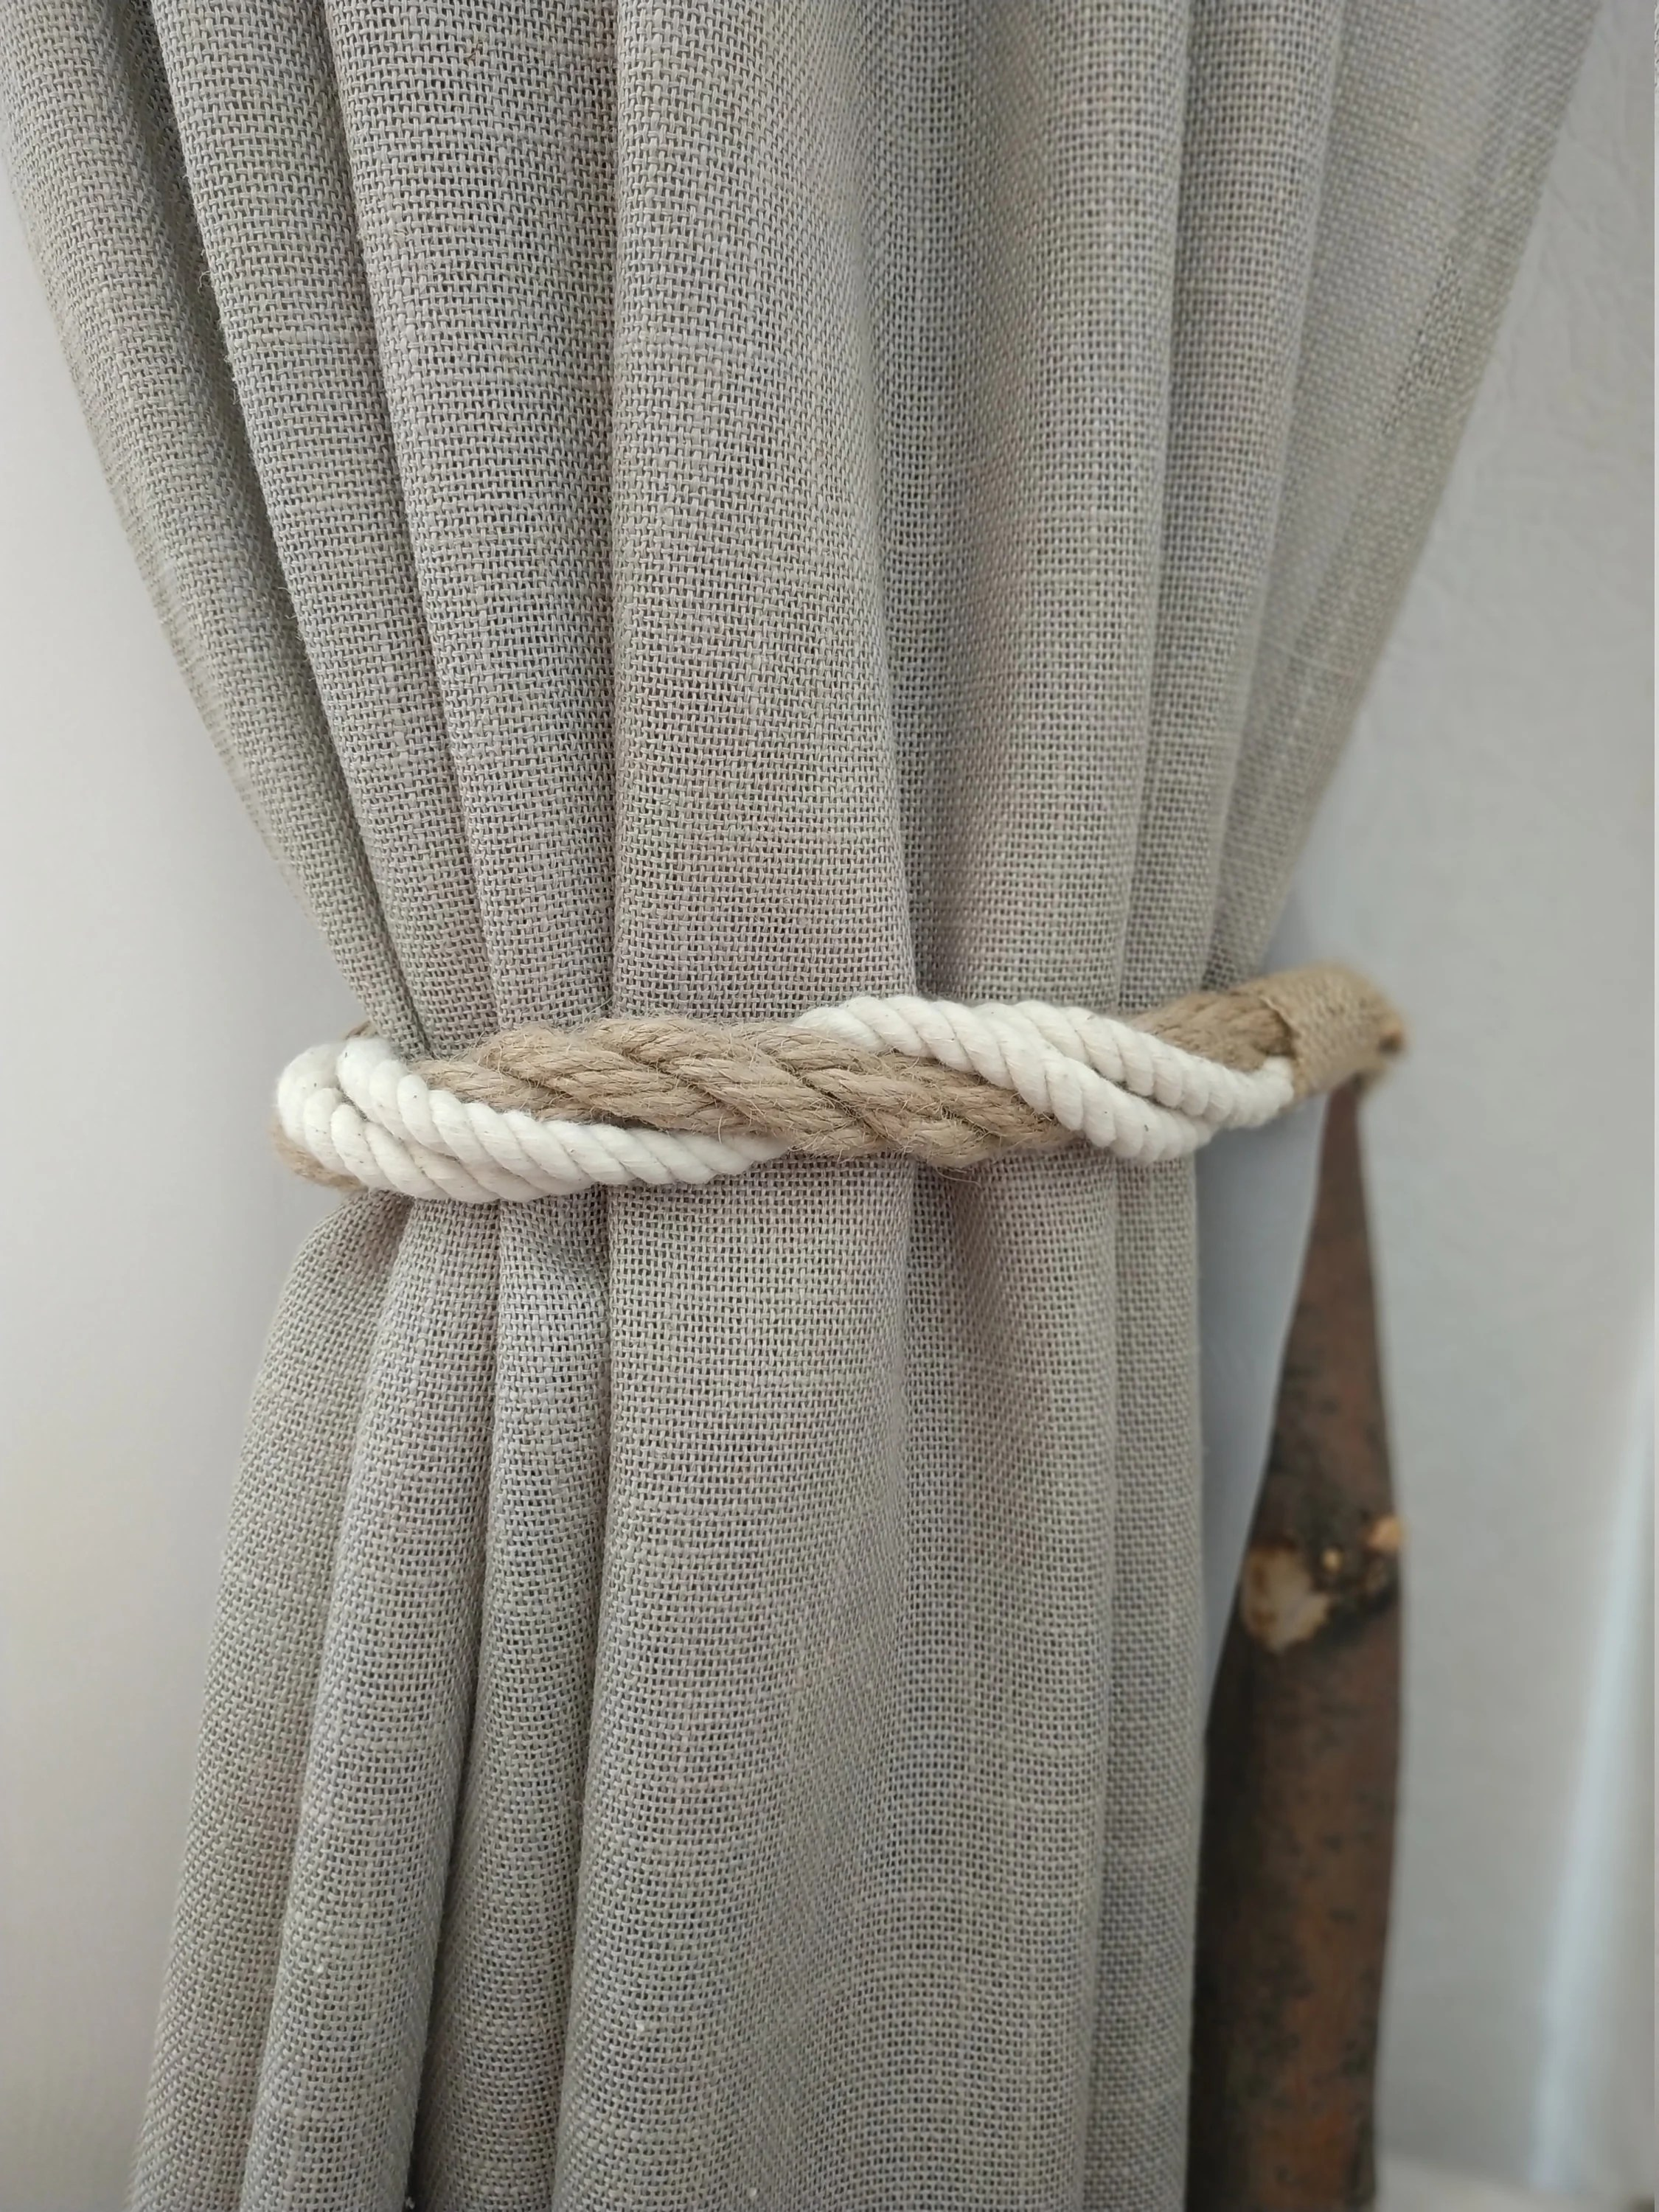 Rope Curtain Twisted Rope Curtain Tie Backs Nautical Curtain Tie Back Jute Cotton Curtain Tiebacks Nautical Décor For Curtains Rope Holdback